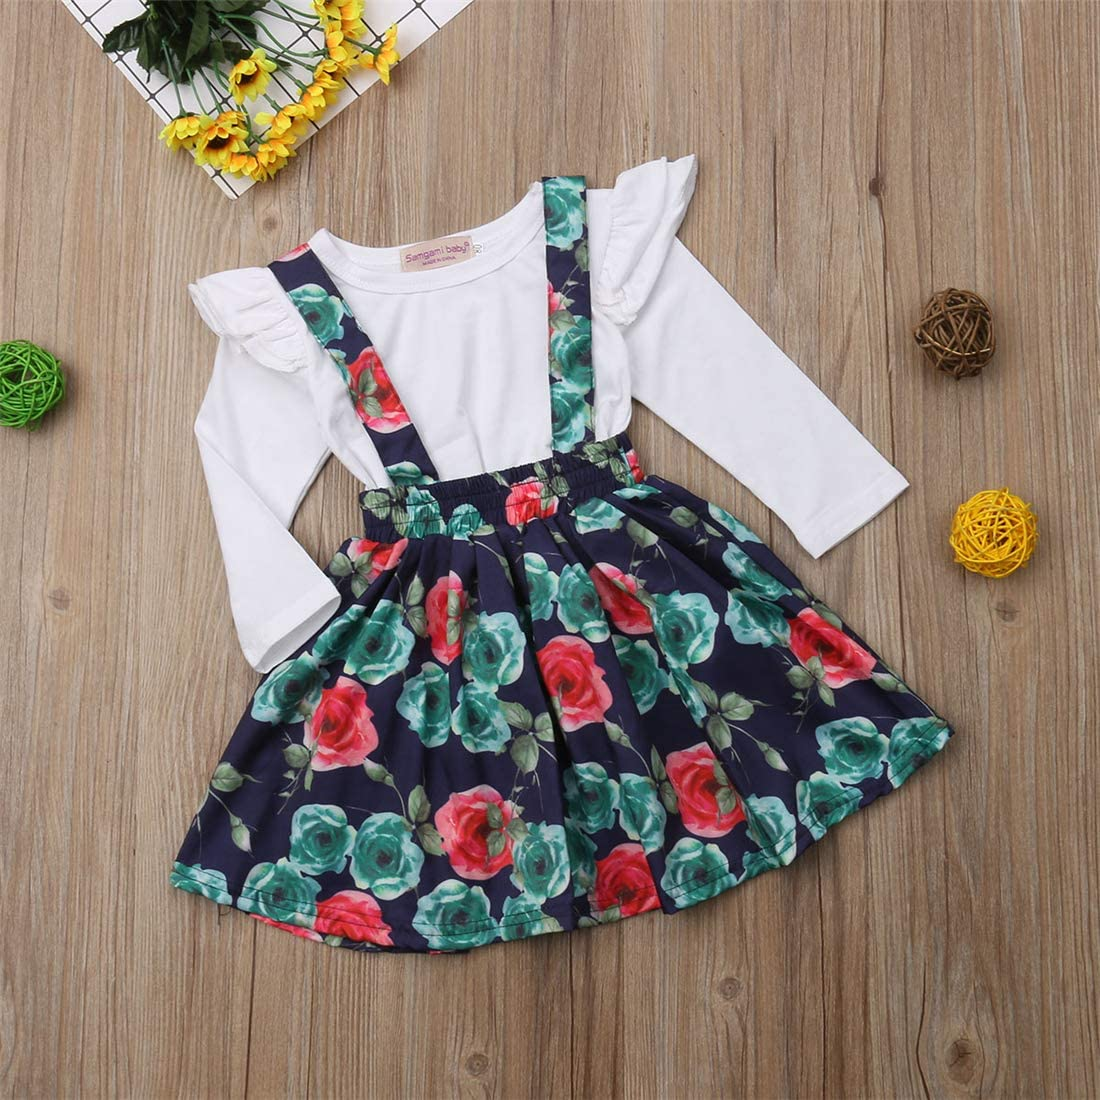 1-6 Year Infant Toddler Baby Girls Floral Print Dress 2 Pc Clothes Outfit Set Longsleeve White Top Shirt Navy Strap Dress